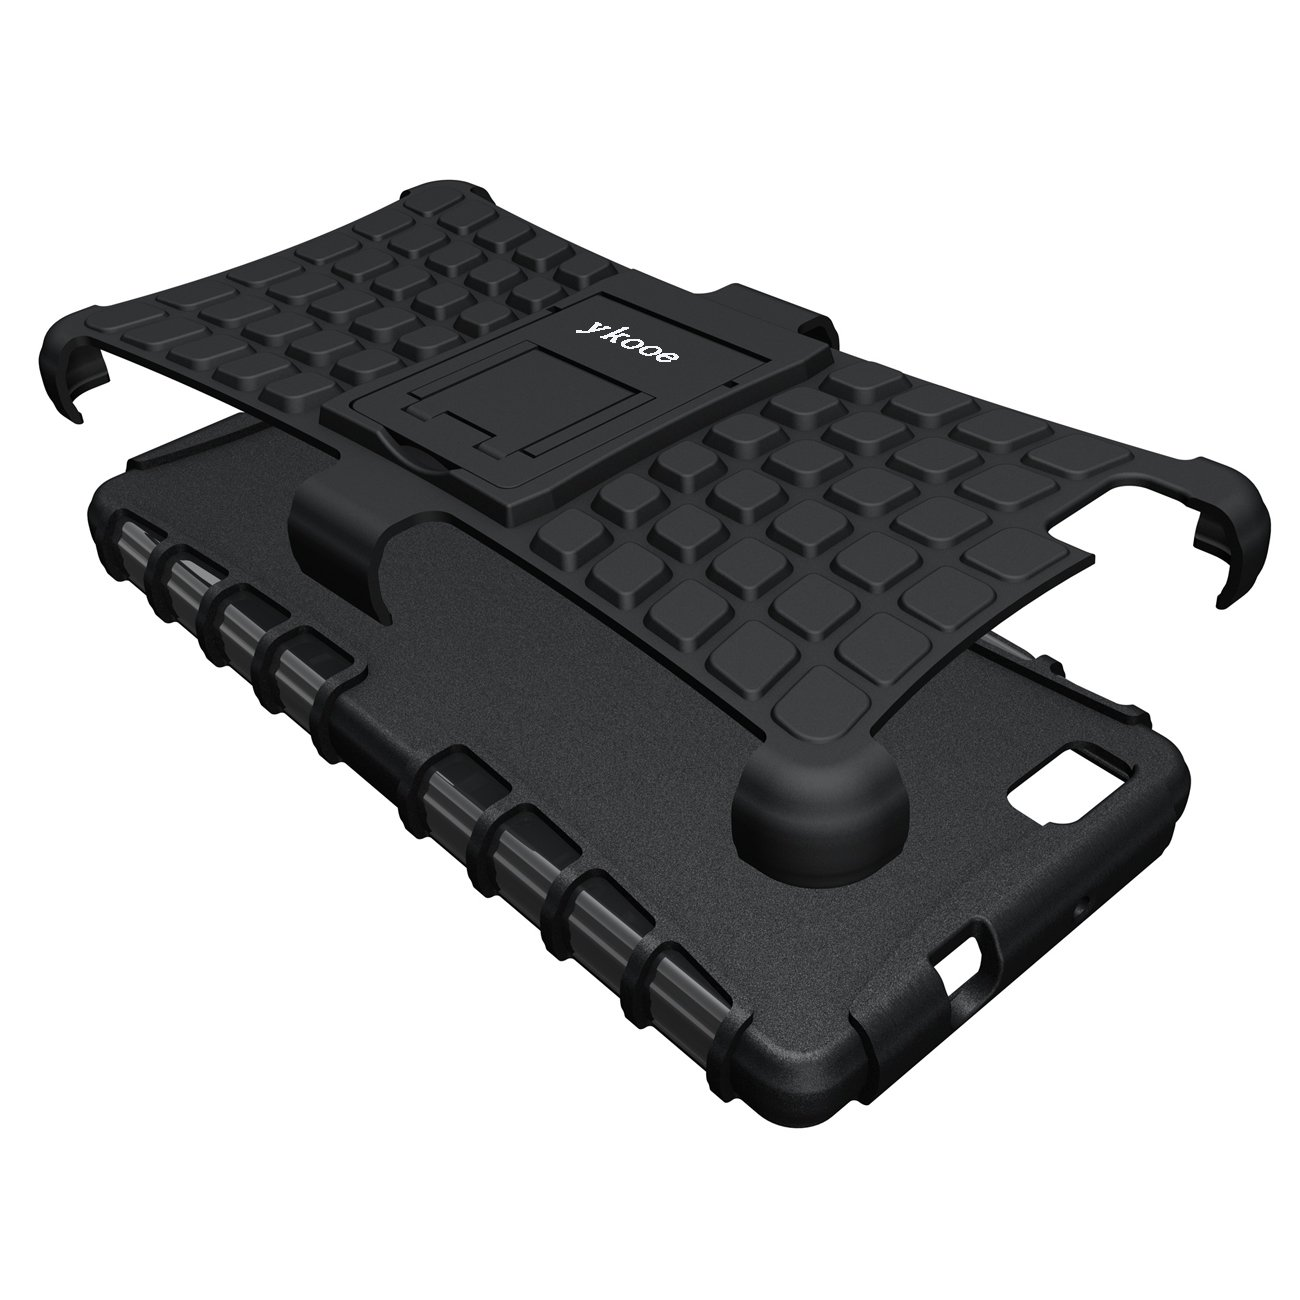 Amazon.com: Huawei P8 Lite Funda, ykooe Armor Heavy Duty ...